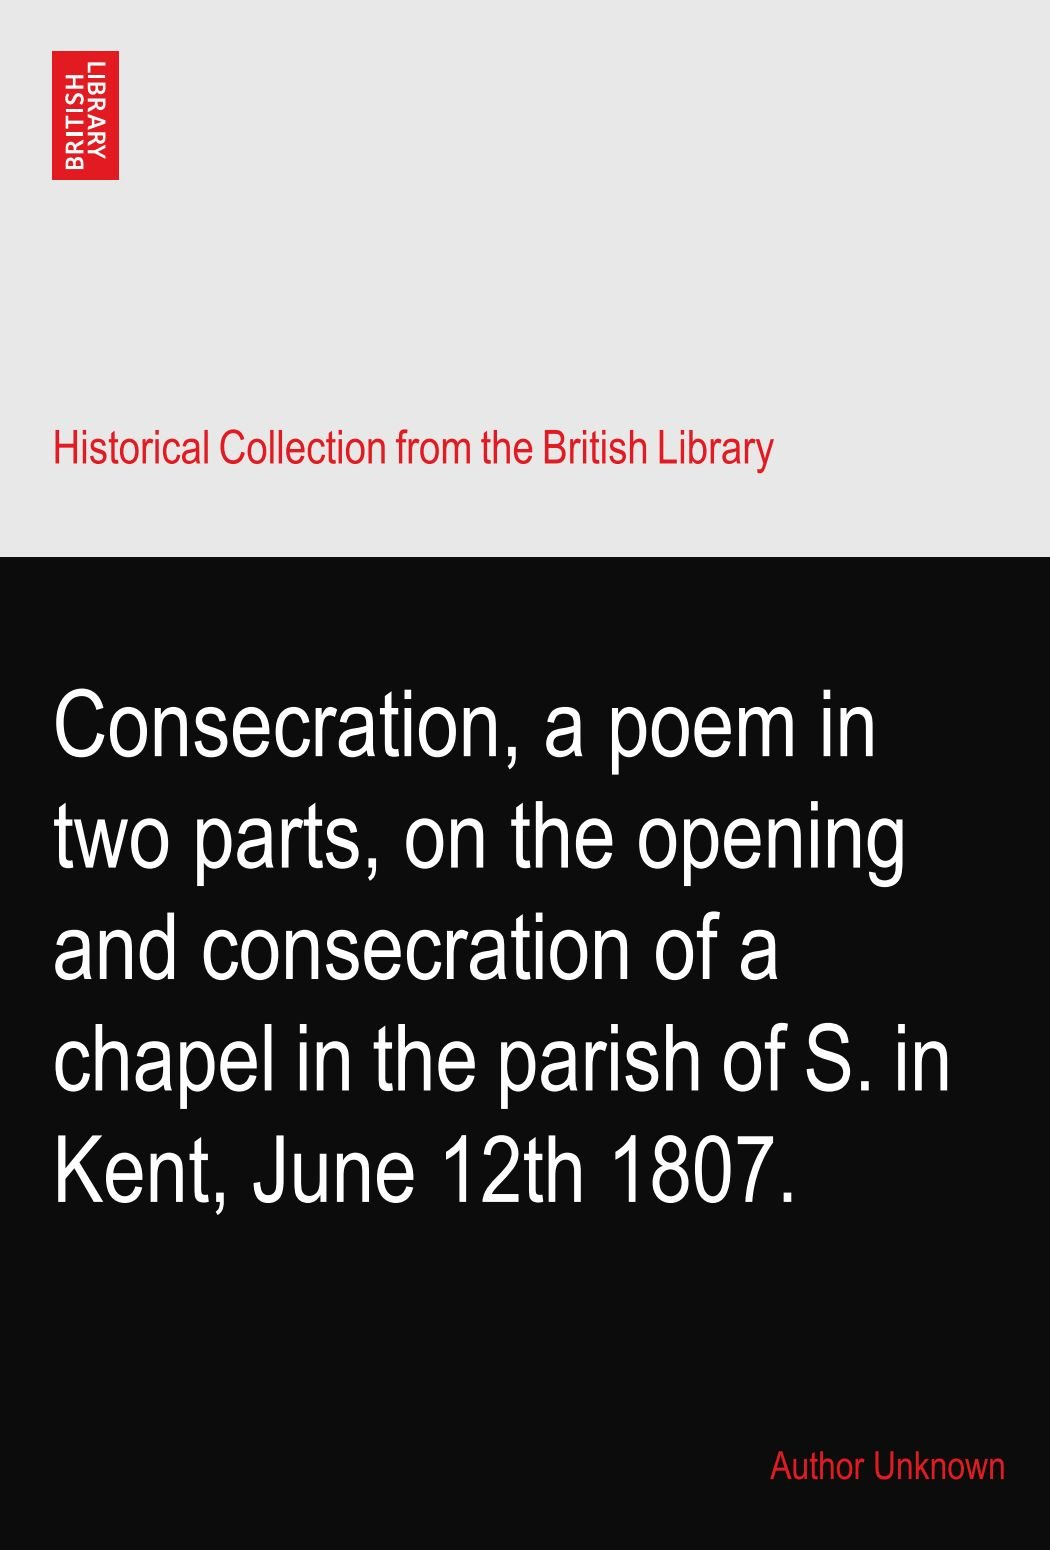 Consecration, a poem in two parts, on the opening and consecration of a chapel in the parish of S. in Kent, June 12th 1807. PDF